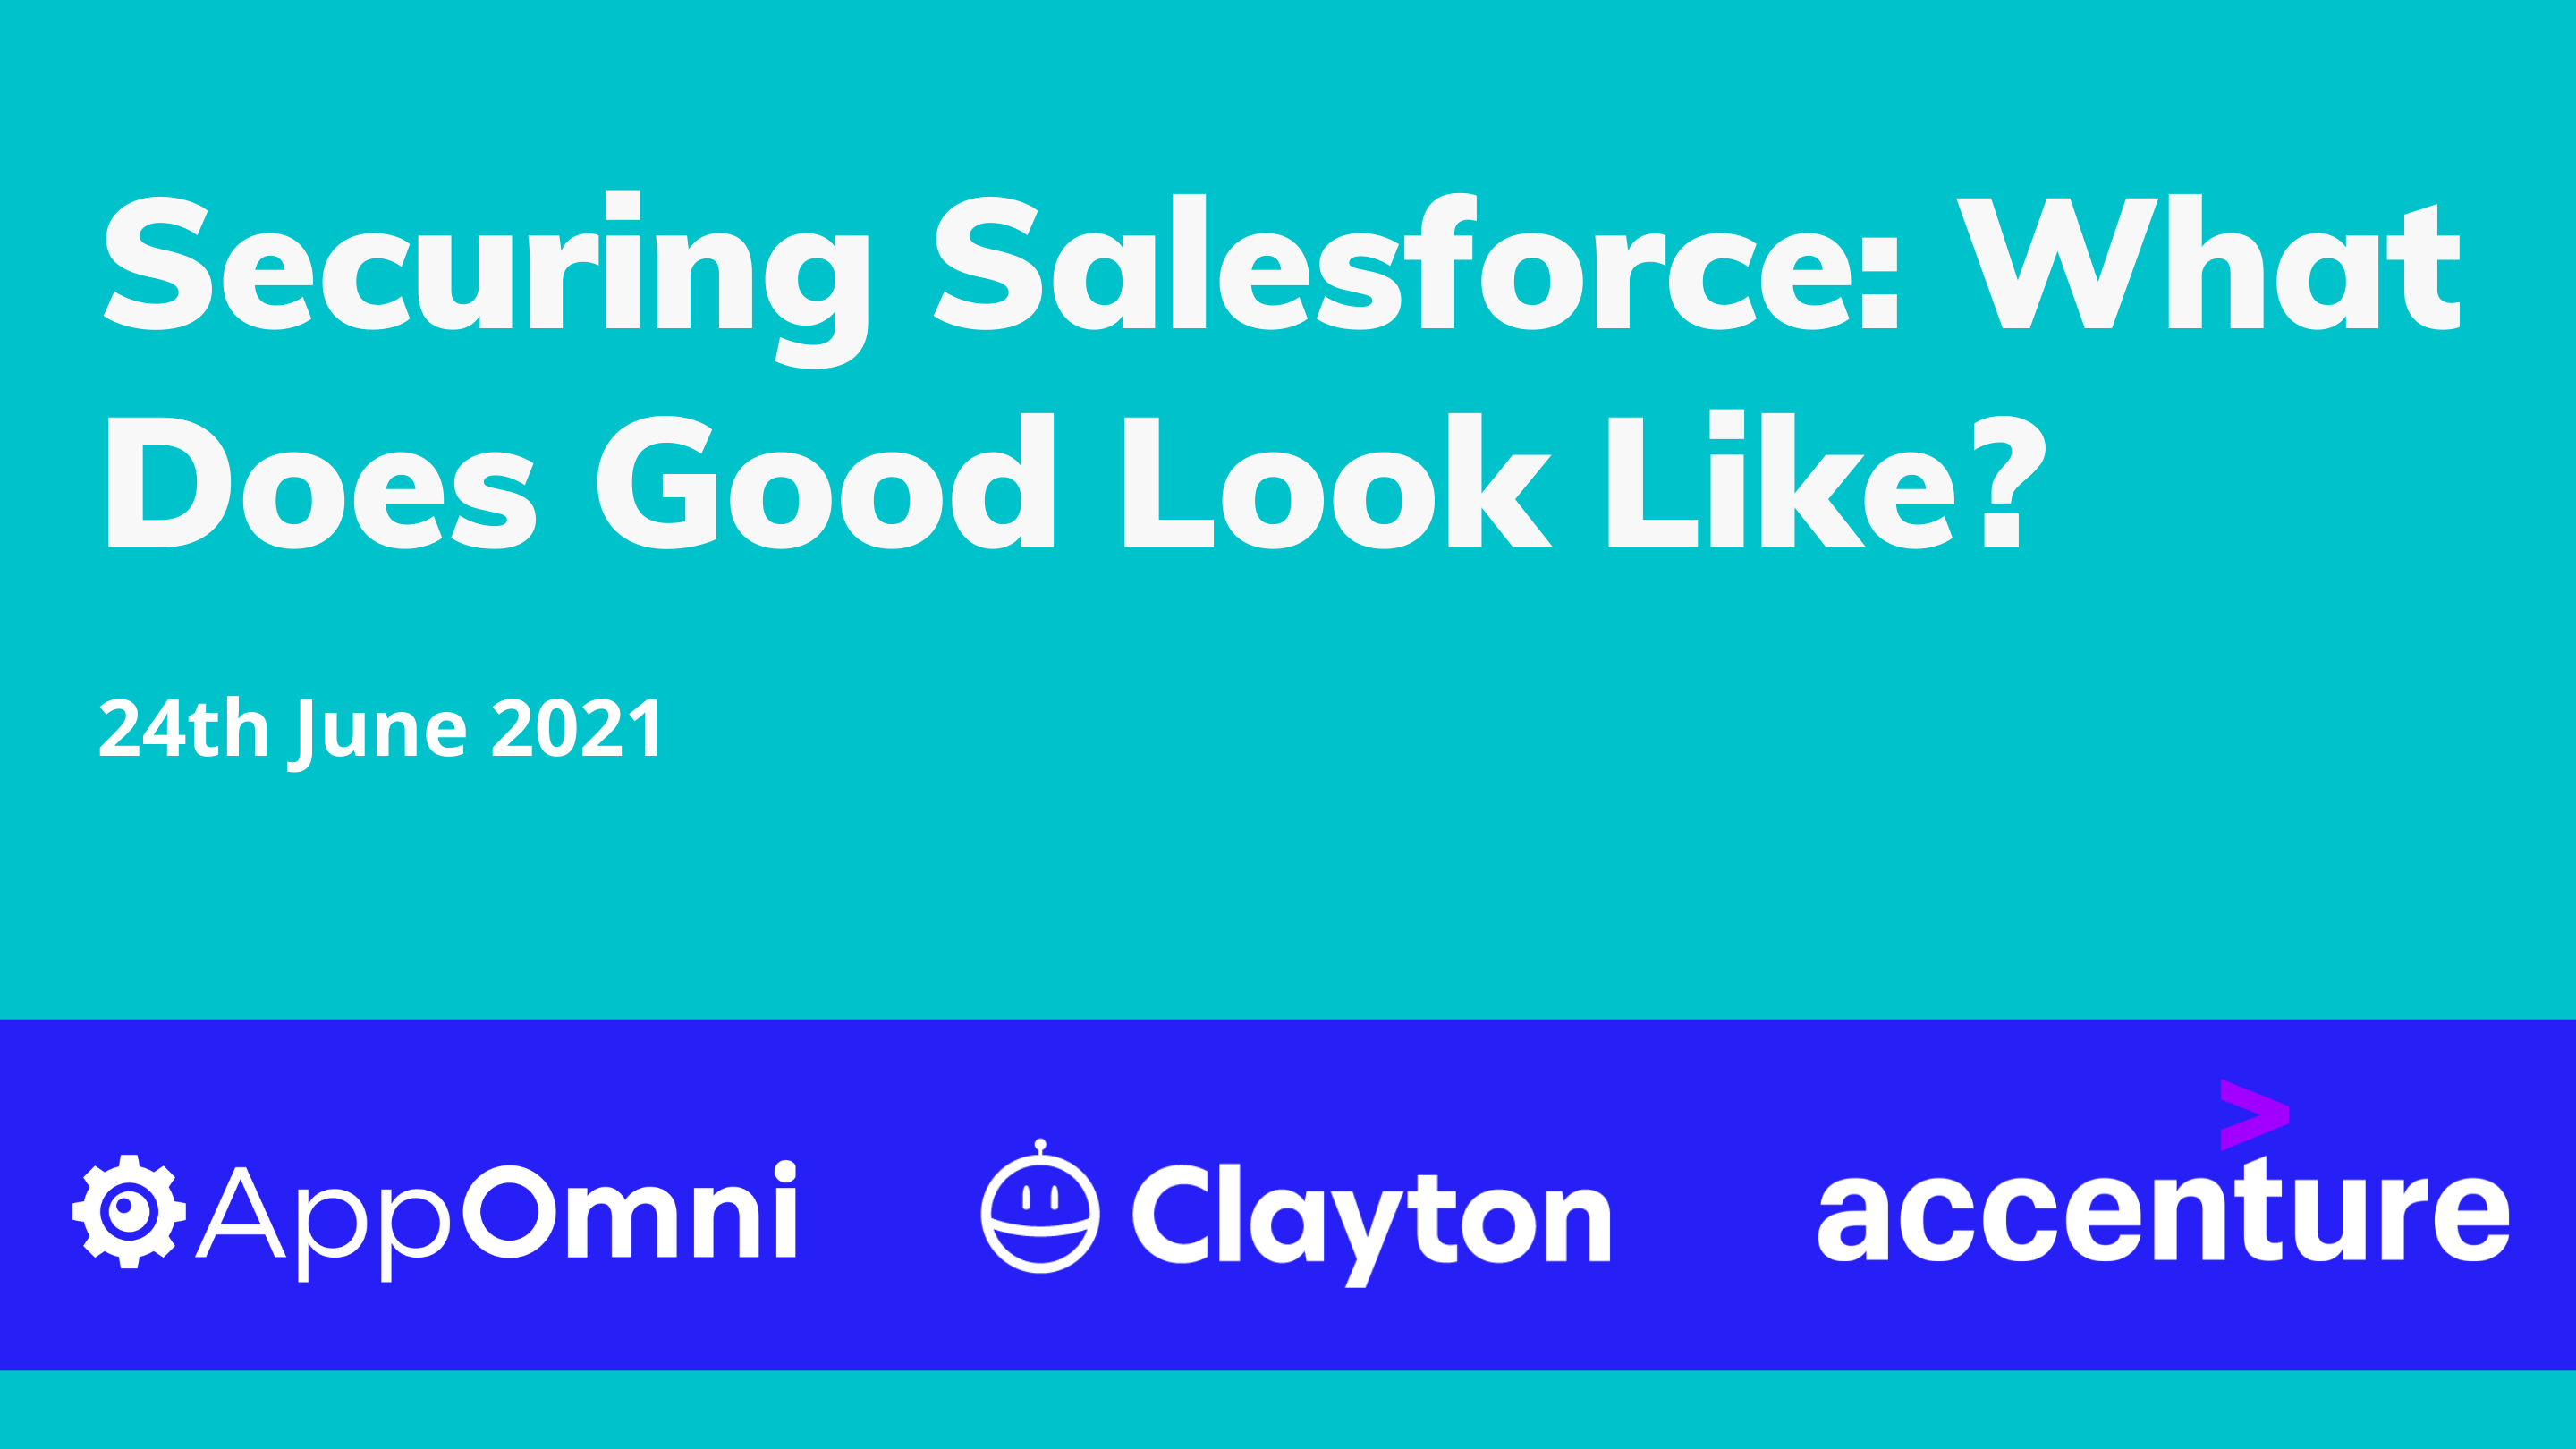 Securing Salesforce: What Does Good Look Like?